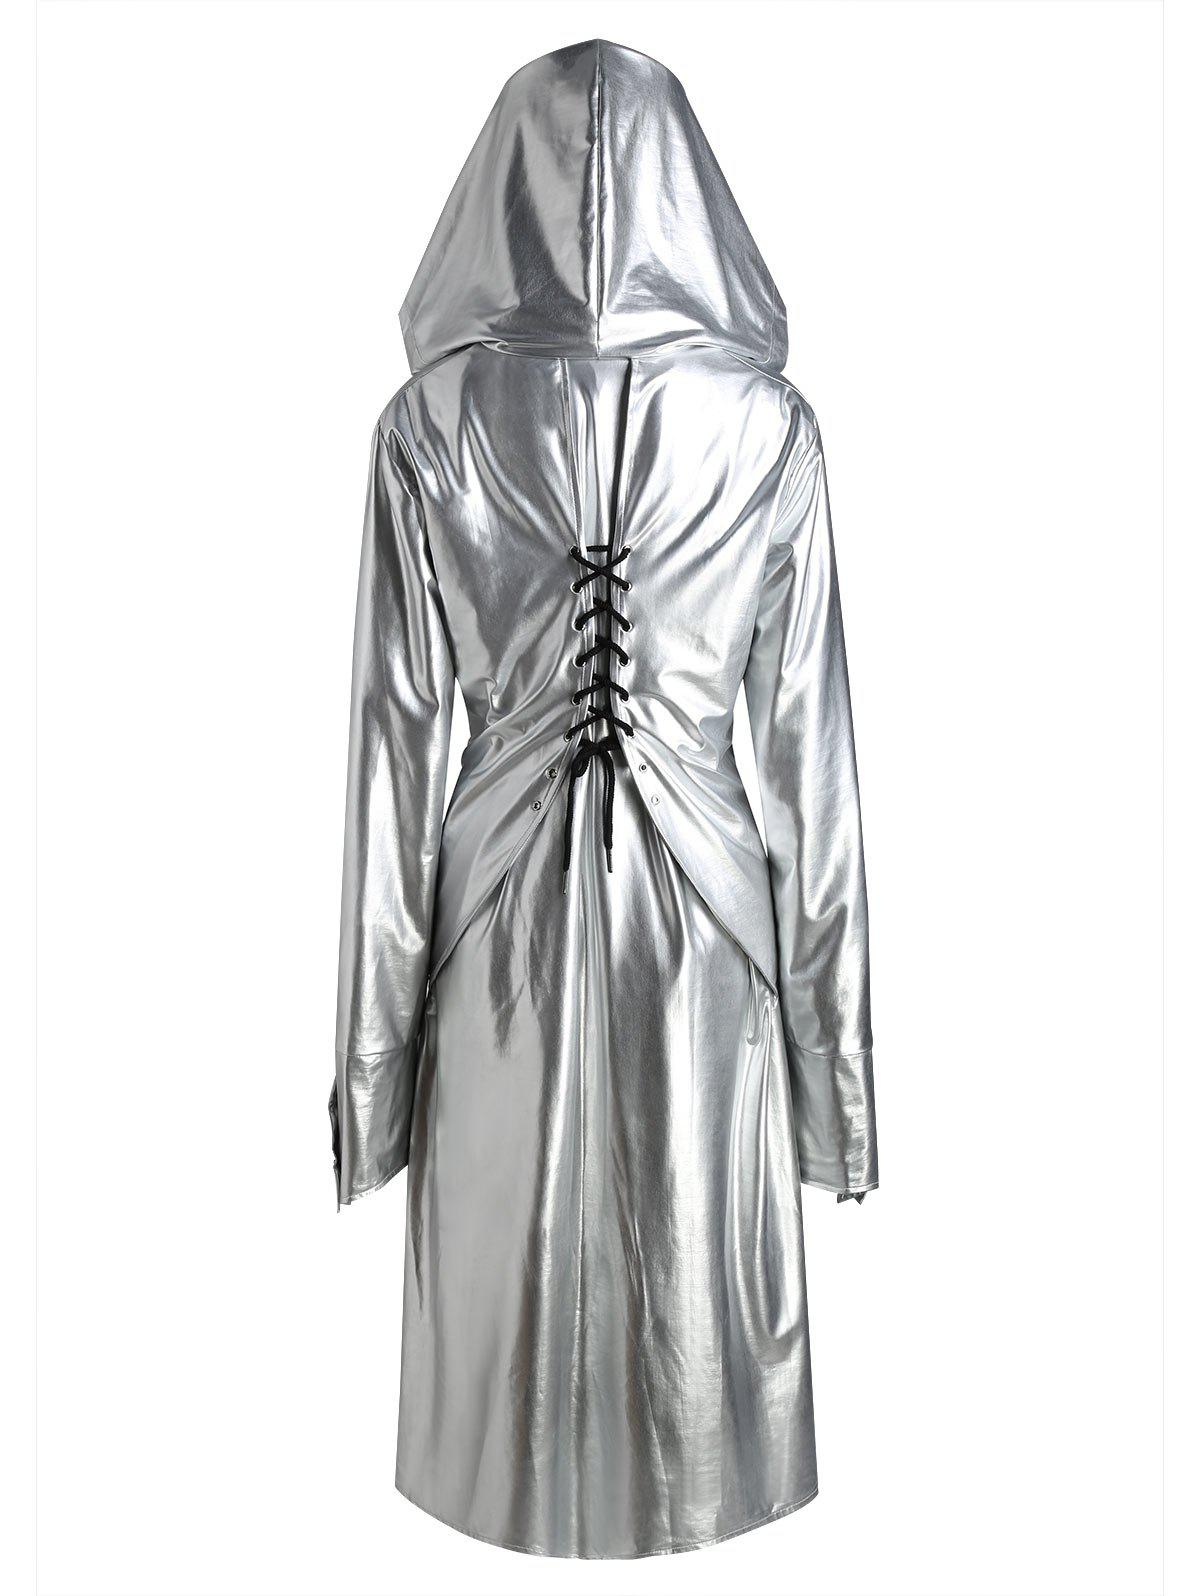 Plus Size Hooded Lace Up Longline CoatWOMEN<br><br>Size: 3XL; Color: SILVER; Clothes Type: Others; Material: Cotton,Polyester; Type: Slim; Shirt Length: Long; Sleeve Length: Full; Collar: Hooded; Pattern Type: Solid; Embellishment: Criss-Cross; Style: Fashion; Season: Fall,Spring; With Belt: No; Weight: 0.8750kg; Package Contents: 1 x Coat;